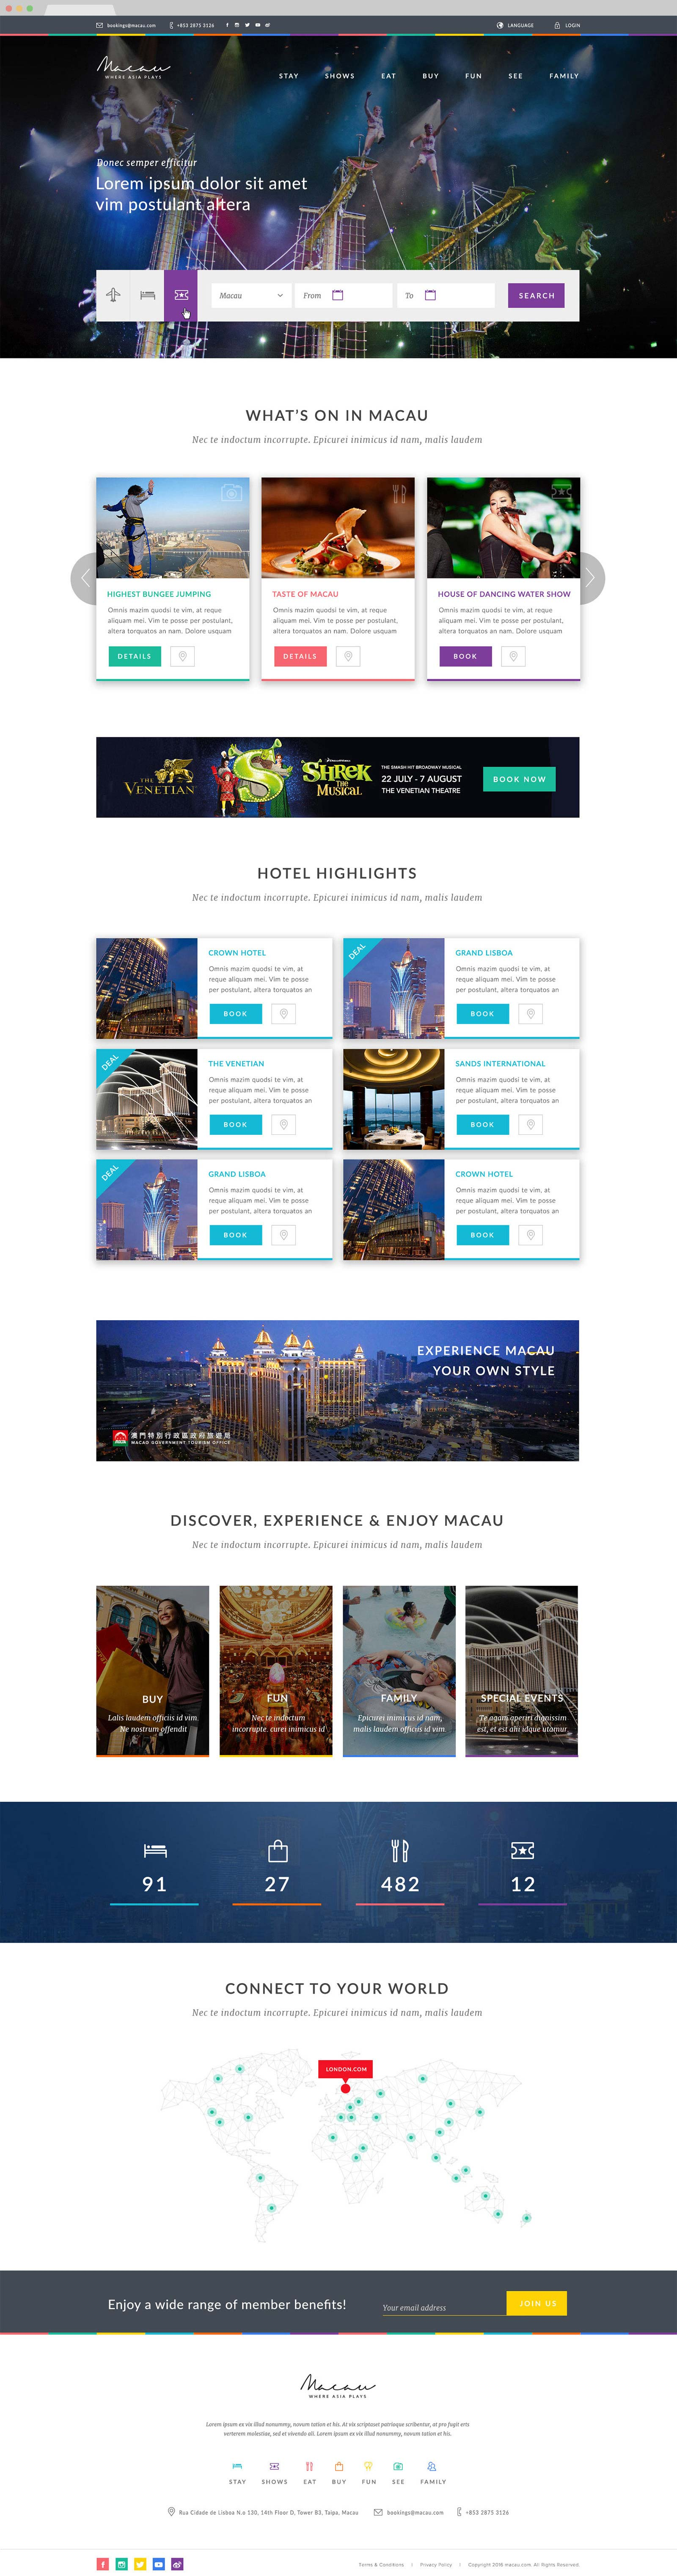 web design hk macau 00